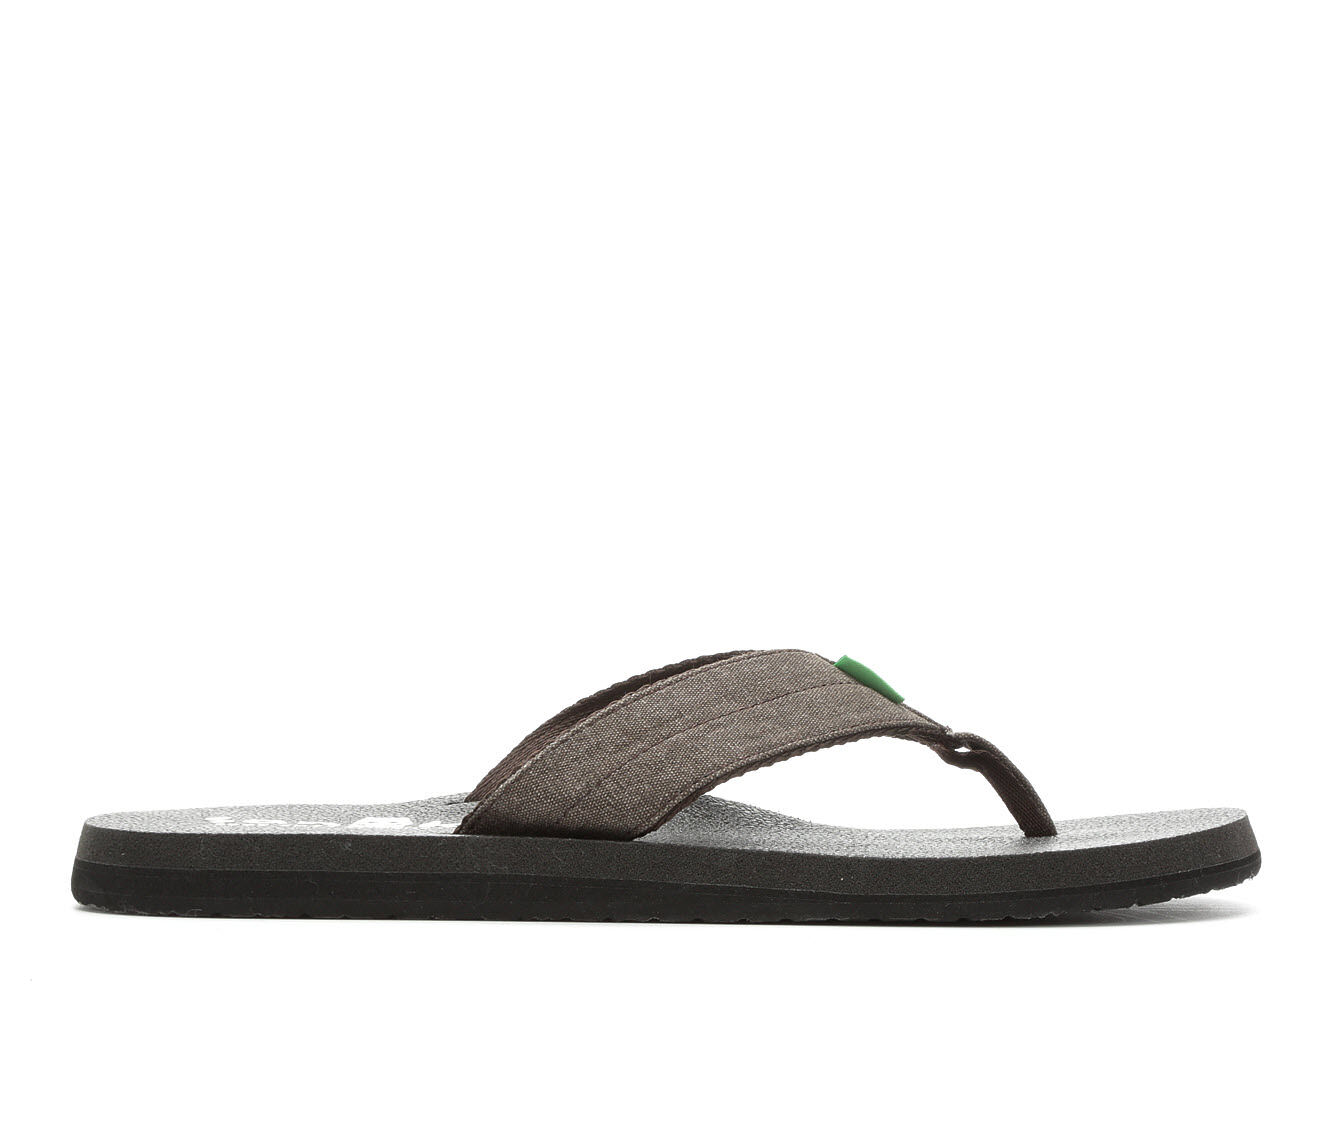 Men's Sanuk Beer Cozy Coaster TX Flip-Flops for sale top quality clearance ebay low shipping fee online discount comfortable with credit card cheap online g83sn